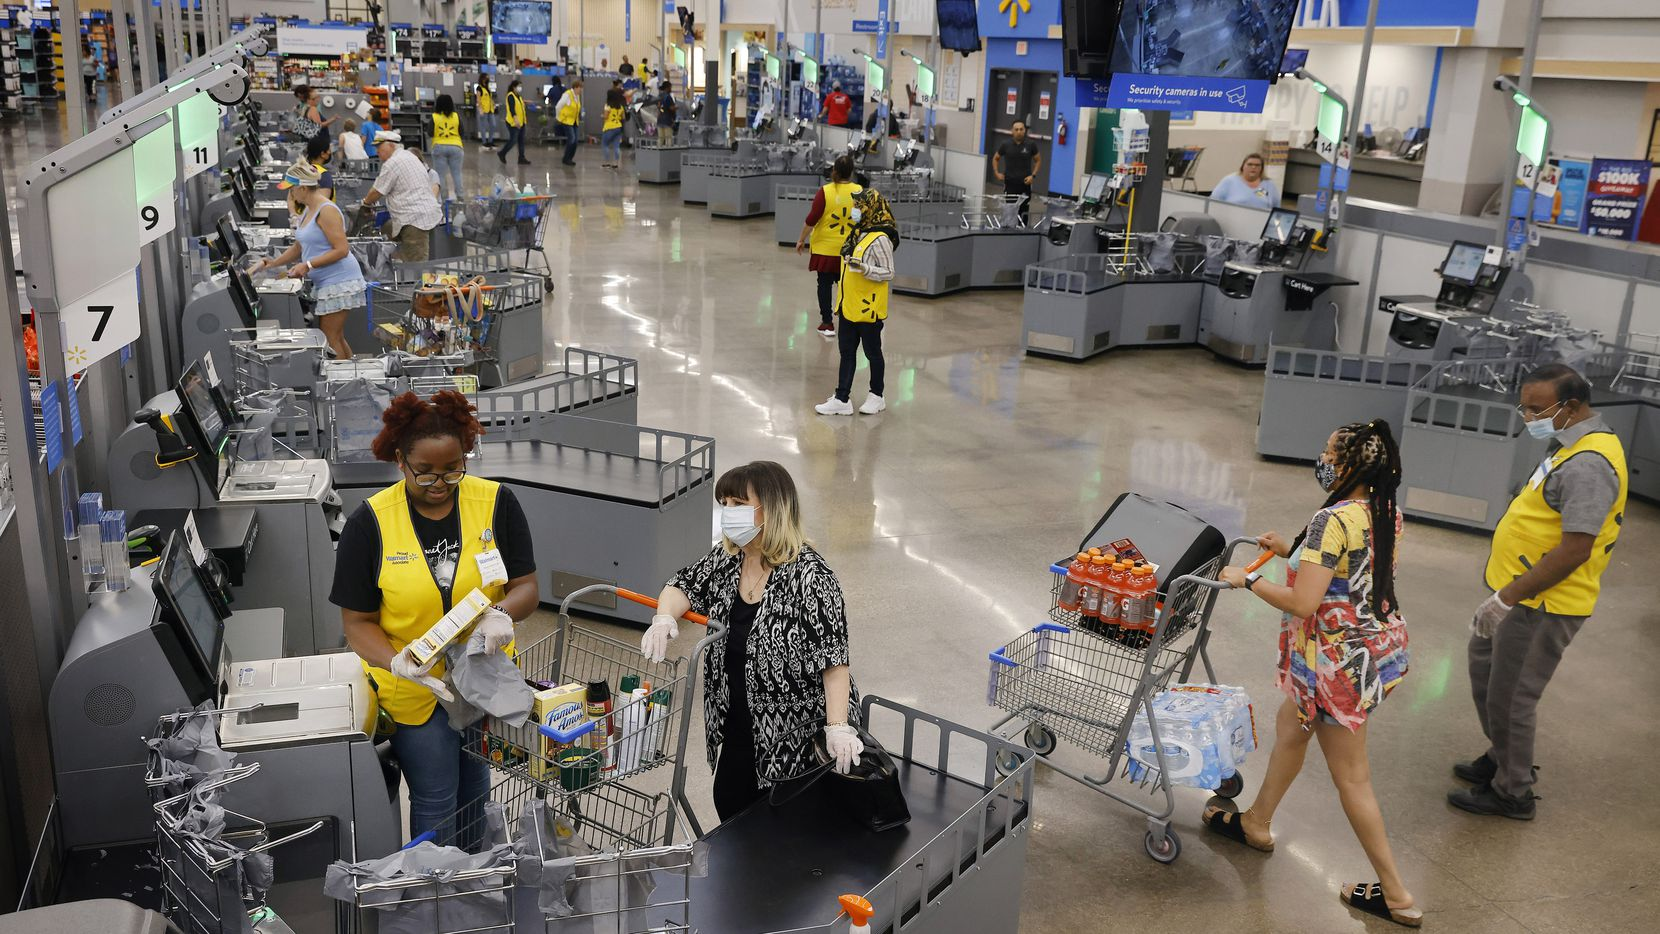 Associates dressed in yellow vests assist customers at the new self checkout corral inside  the Walmart Supercenter on Ohio Drive in Plano, Texas, July 16, 2021. The store is testing a large corral of self checkout stations with a big open space in the middle where the old cashier lanes used to be. (Tom Fox/The Dallas Morning News)